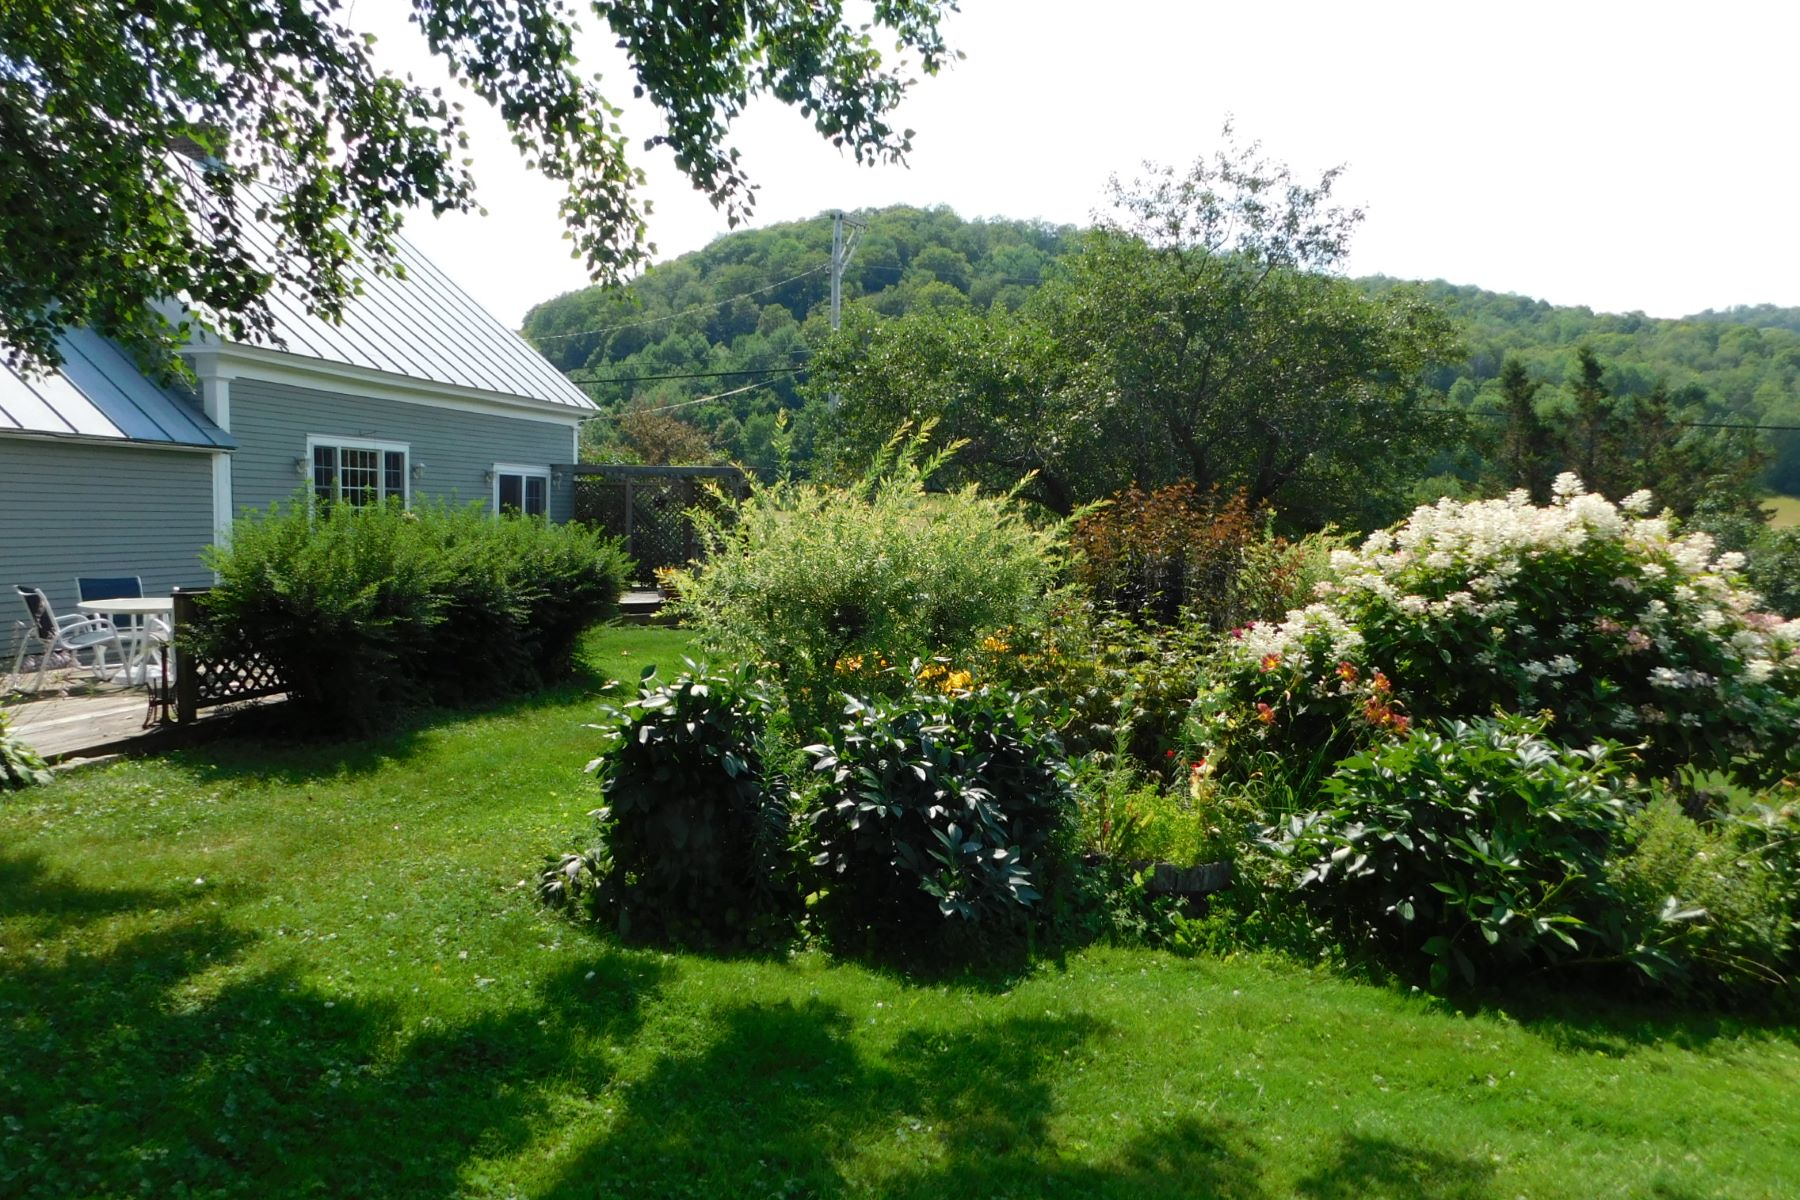 Single Family Home for Sale at 3 Alger Brook Road, Strafford 3 Alger Brook Rd Strafford, Vermont 05070 United States